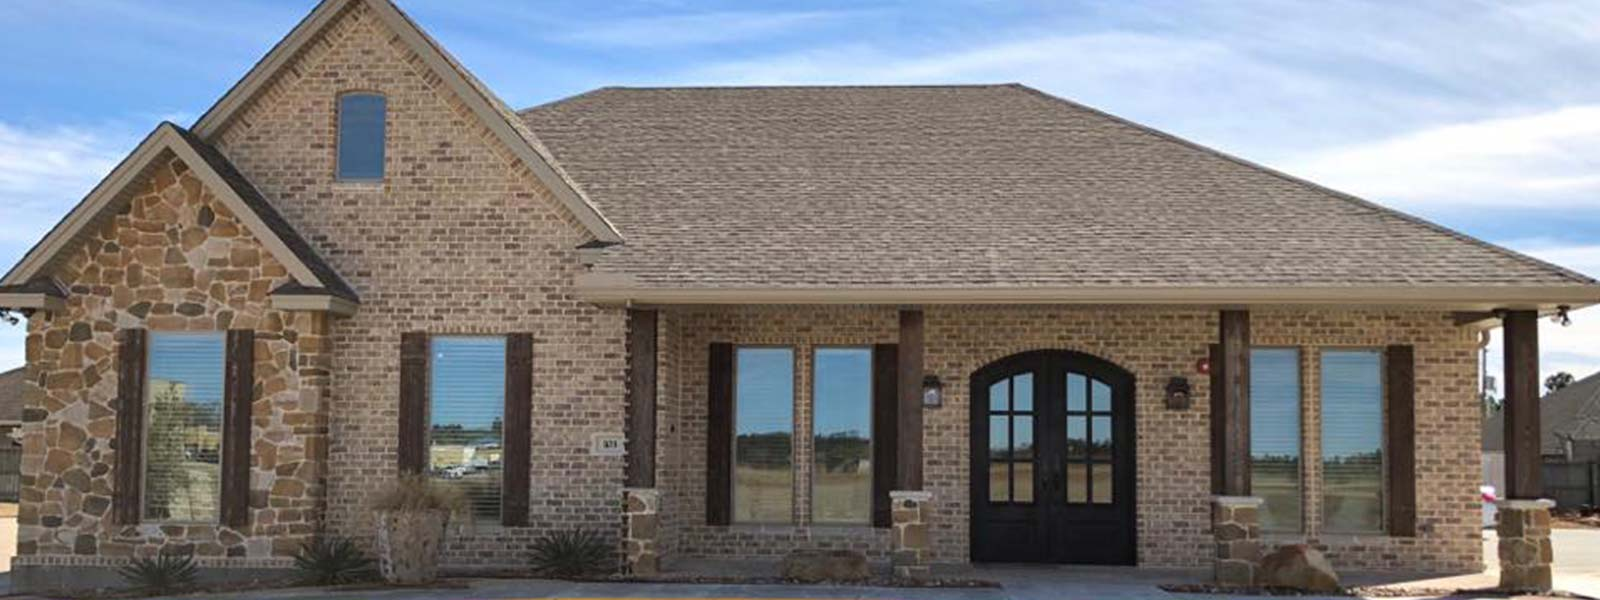 cormier homes home builders in southeast texas